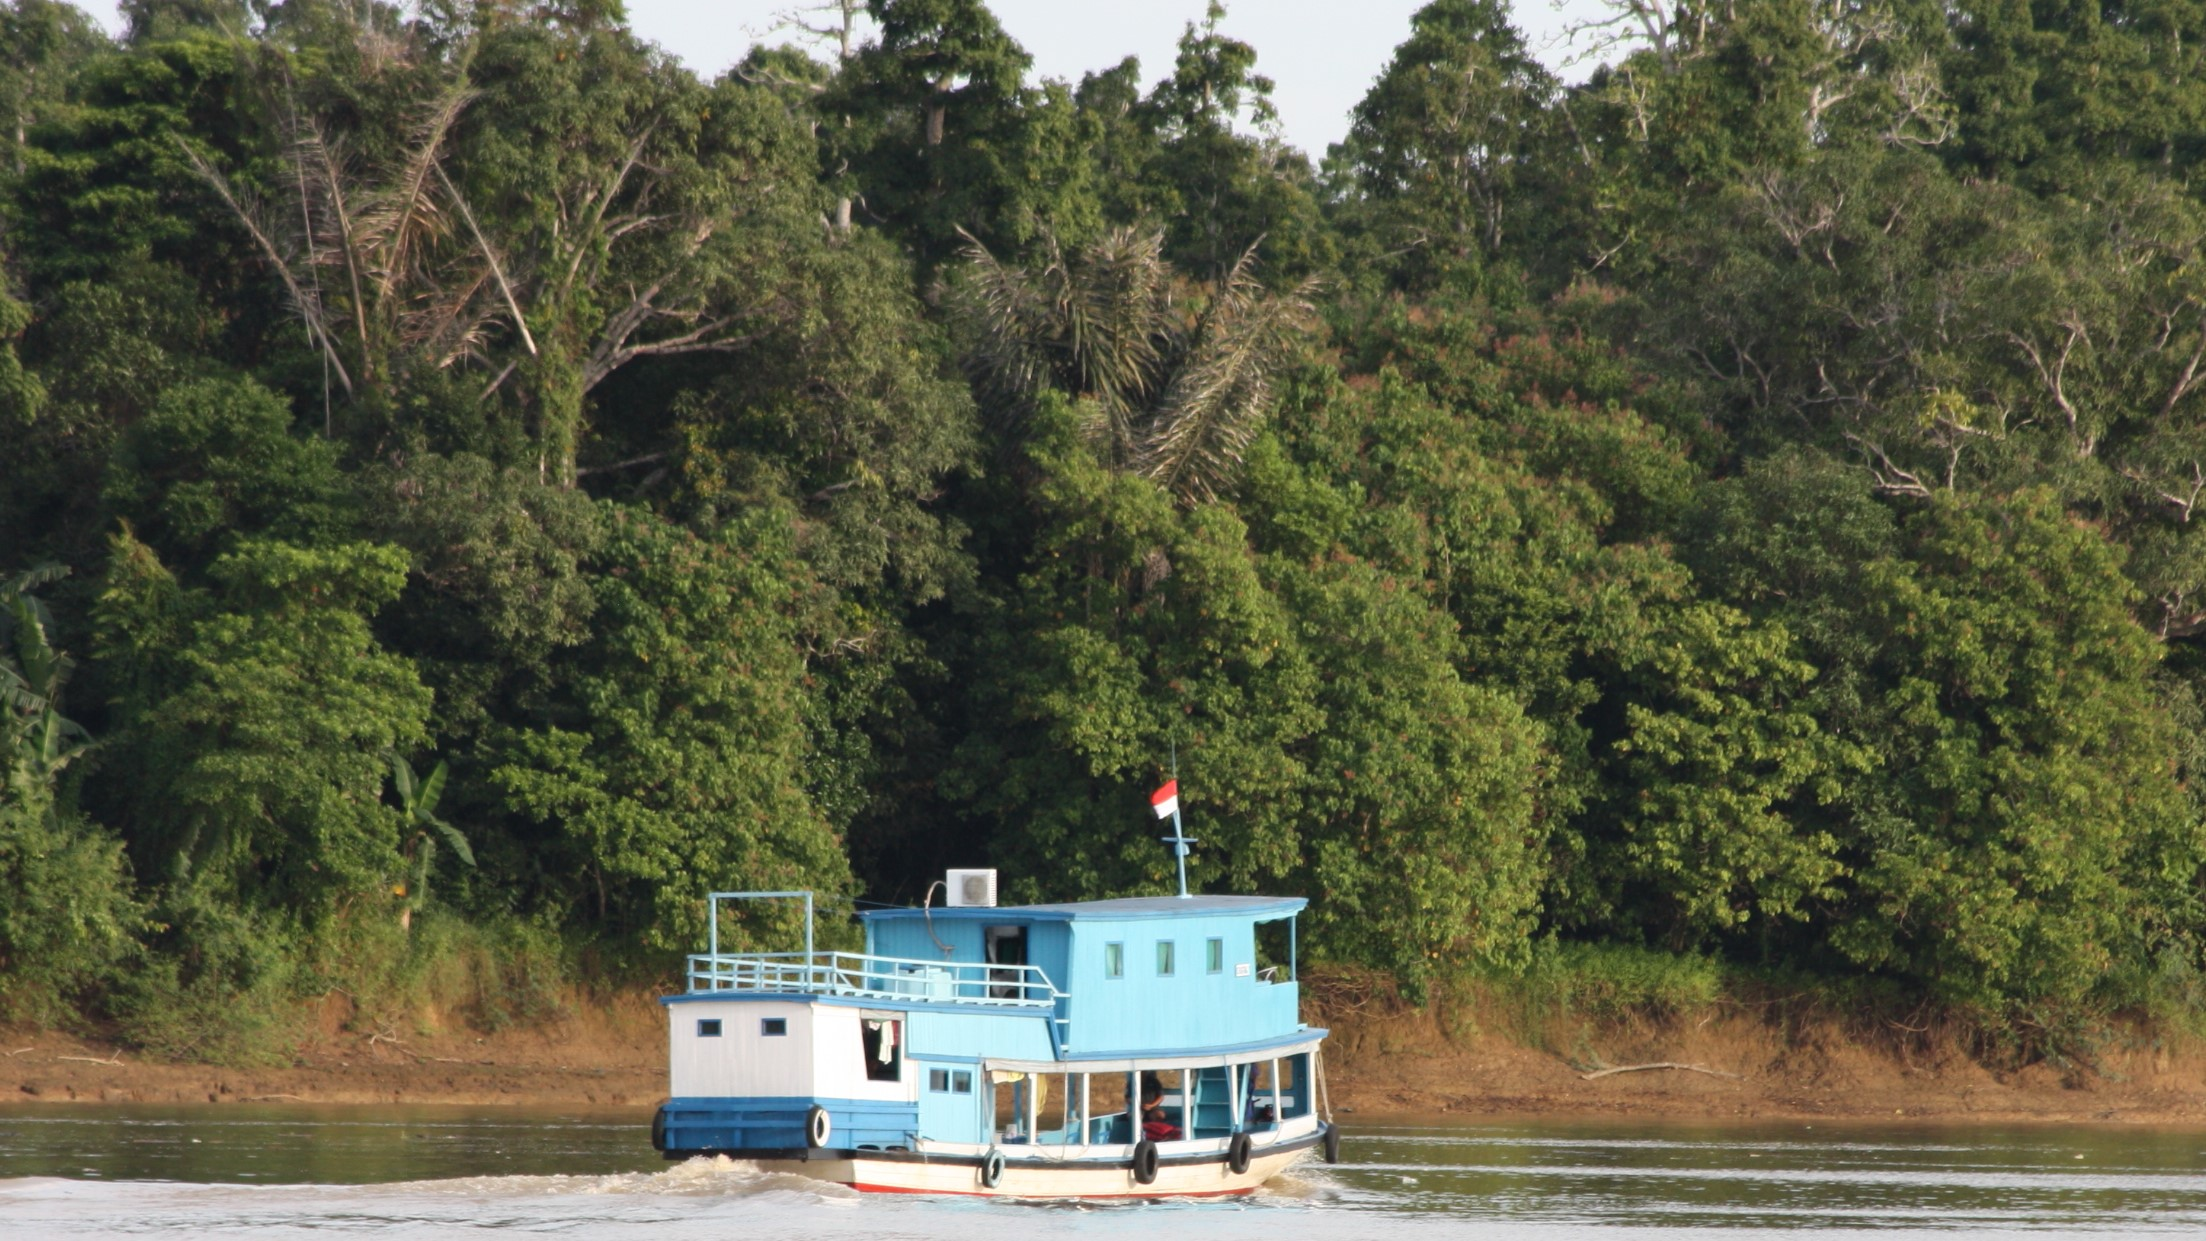 mahakam river, cruise, tour trek, guide, kalimantan, borneo, indonesia, dayak, culture, jungle, wildlife, safari, rain forest, forest, longhouse, journey, expedition